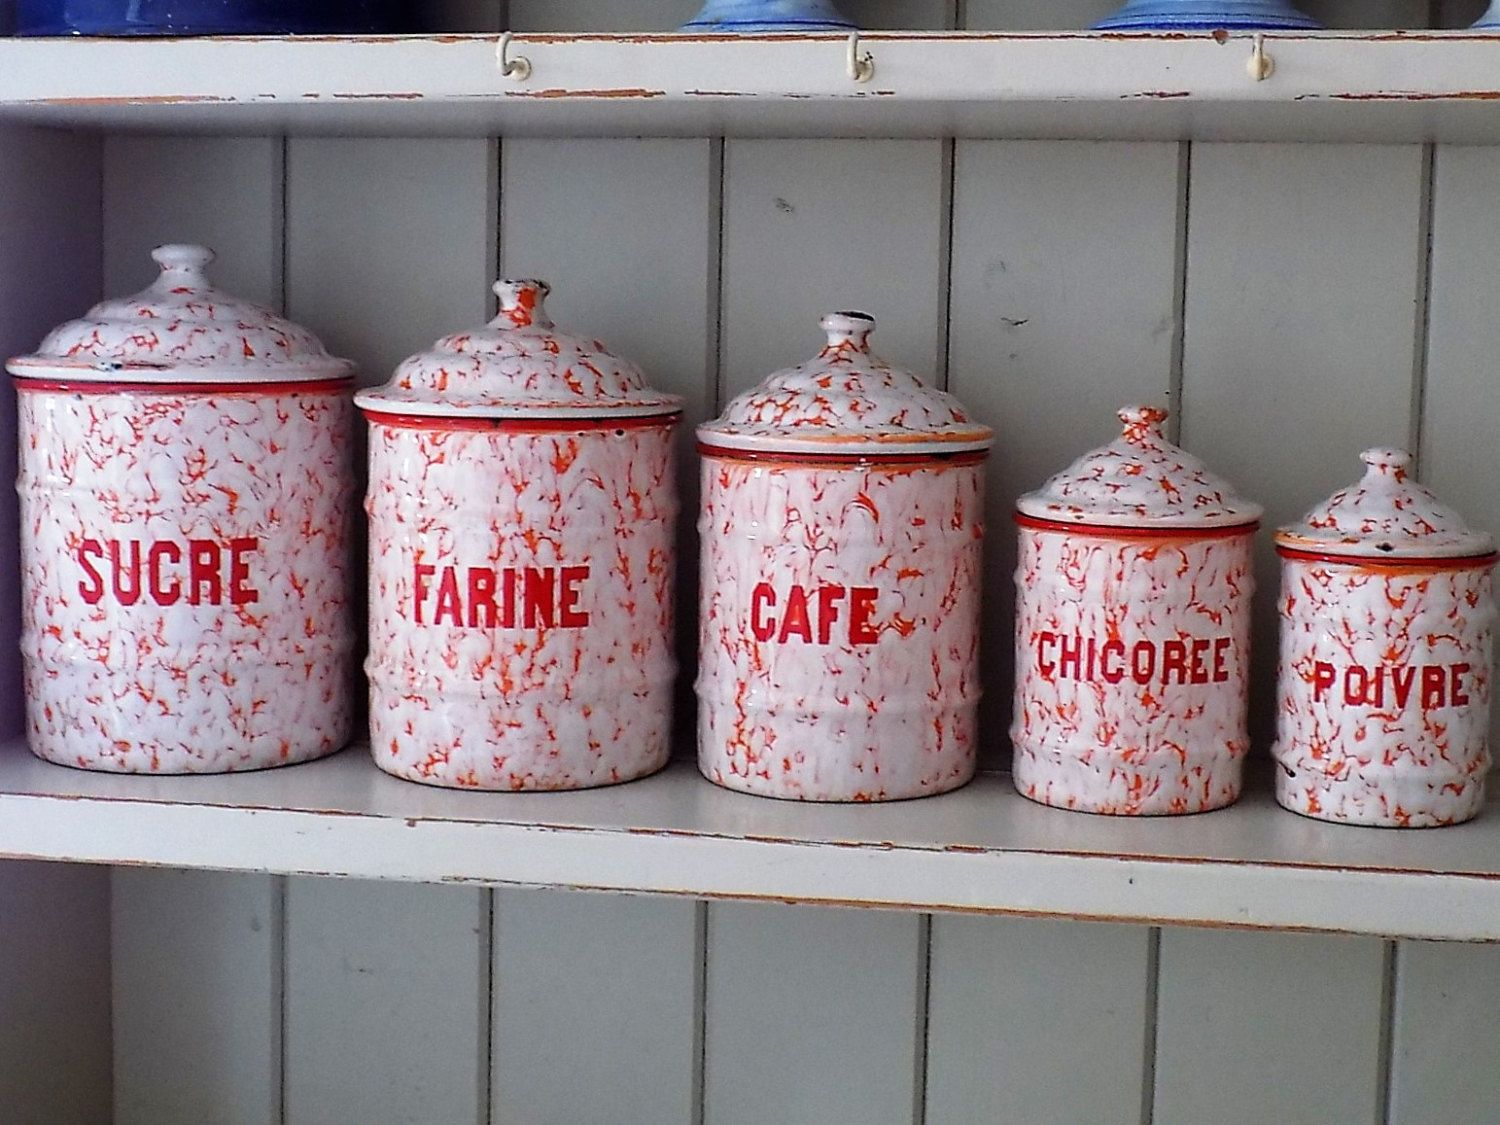 French Vintage Enamel Canisters, Rare Vintage French Enamel Kitchen Storage  Pots, Farmhouse Canisters.